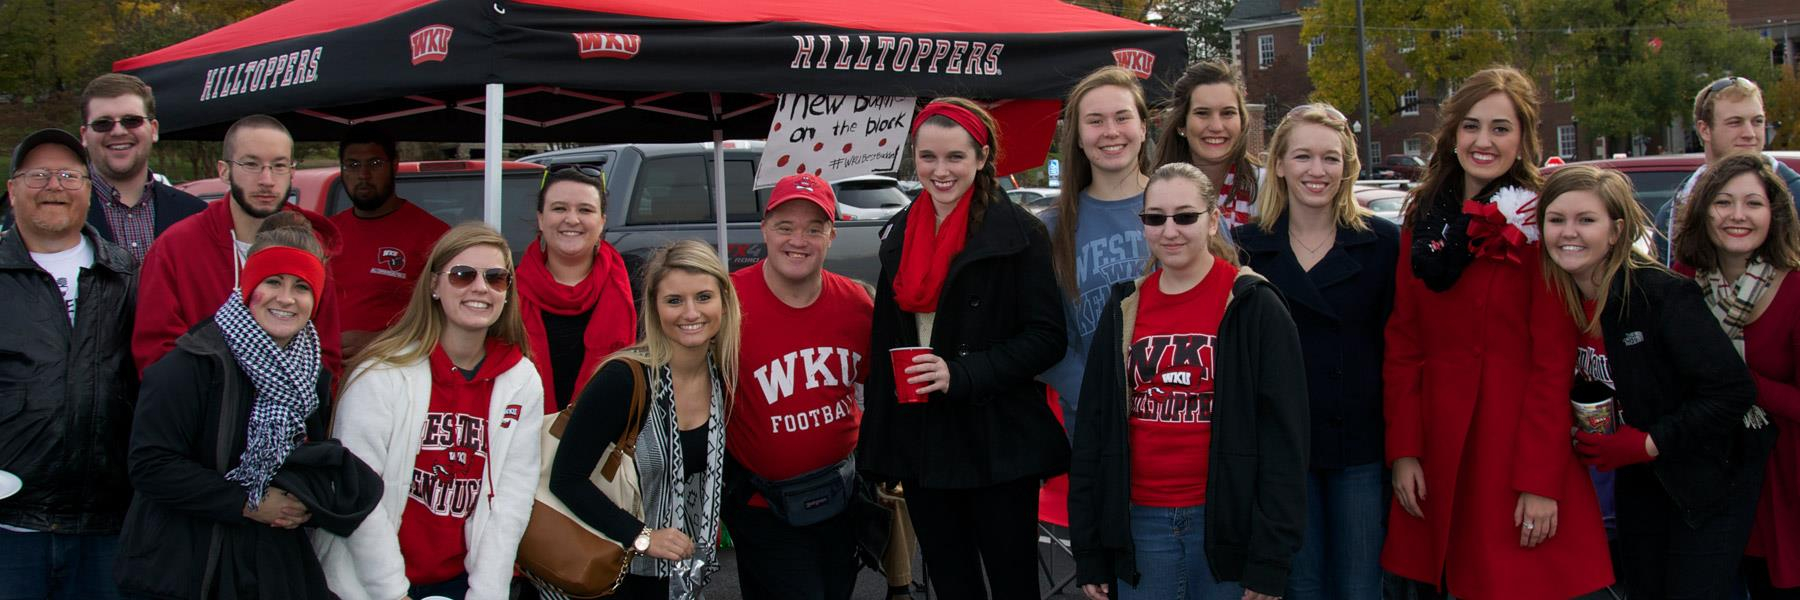 Topper Tailgate 2014 - Weekly football tailgating and ticket information